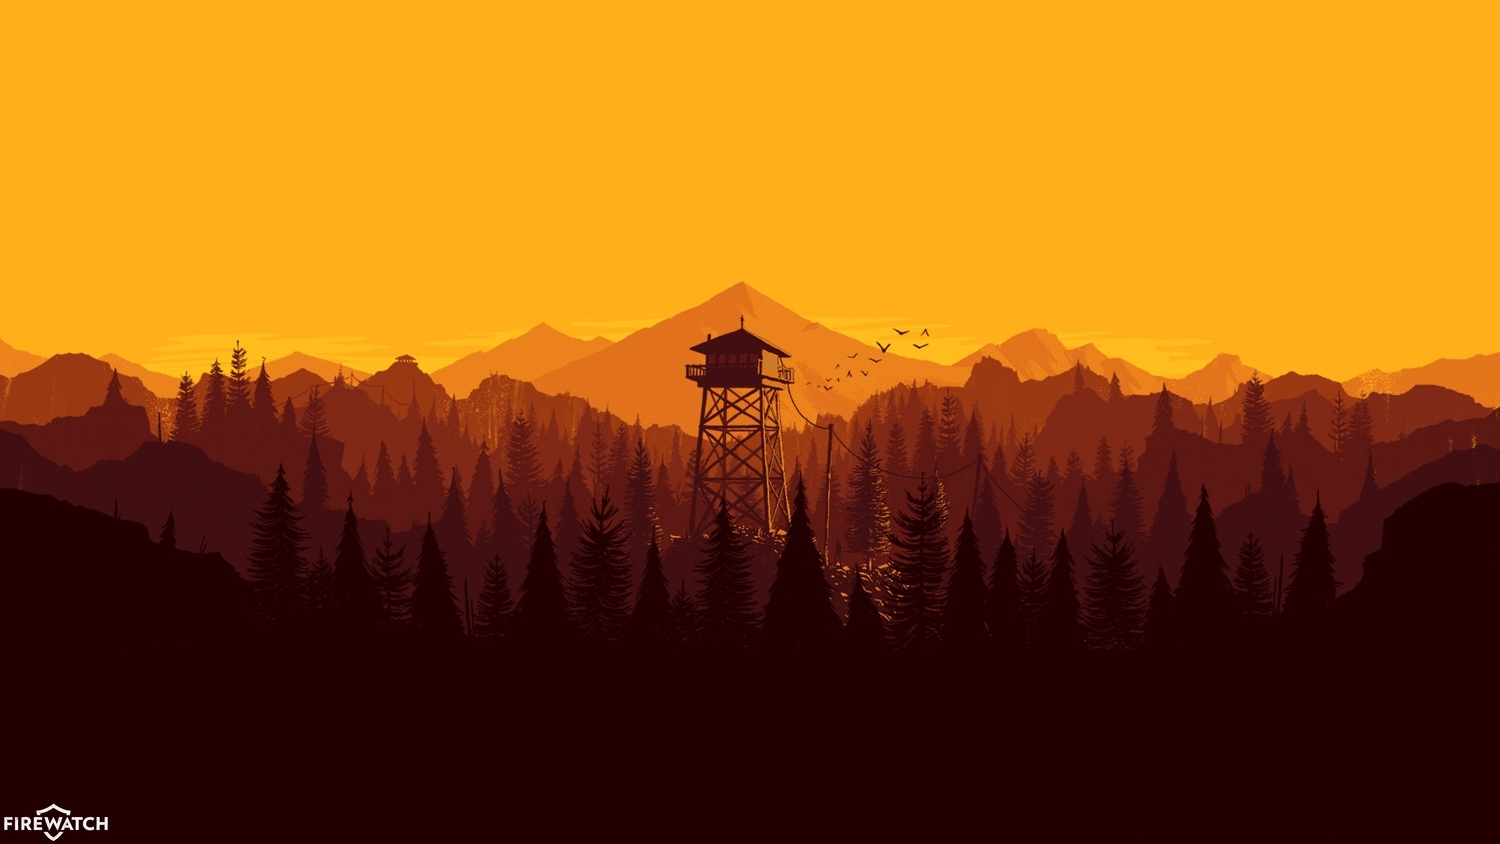 Firewatch, firewatch, I made a Windows 7 Theme with day/night cycle! (reddit) GIFs